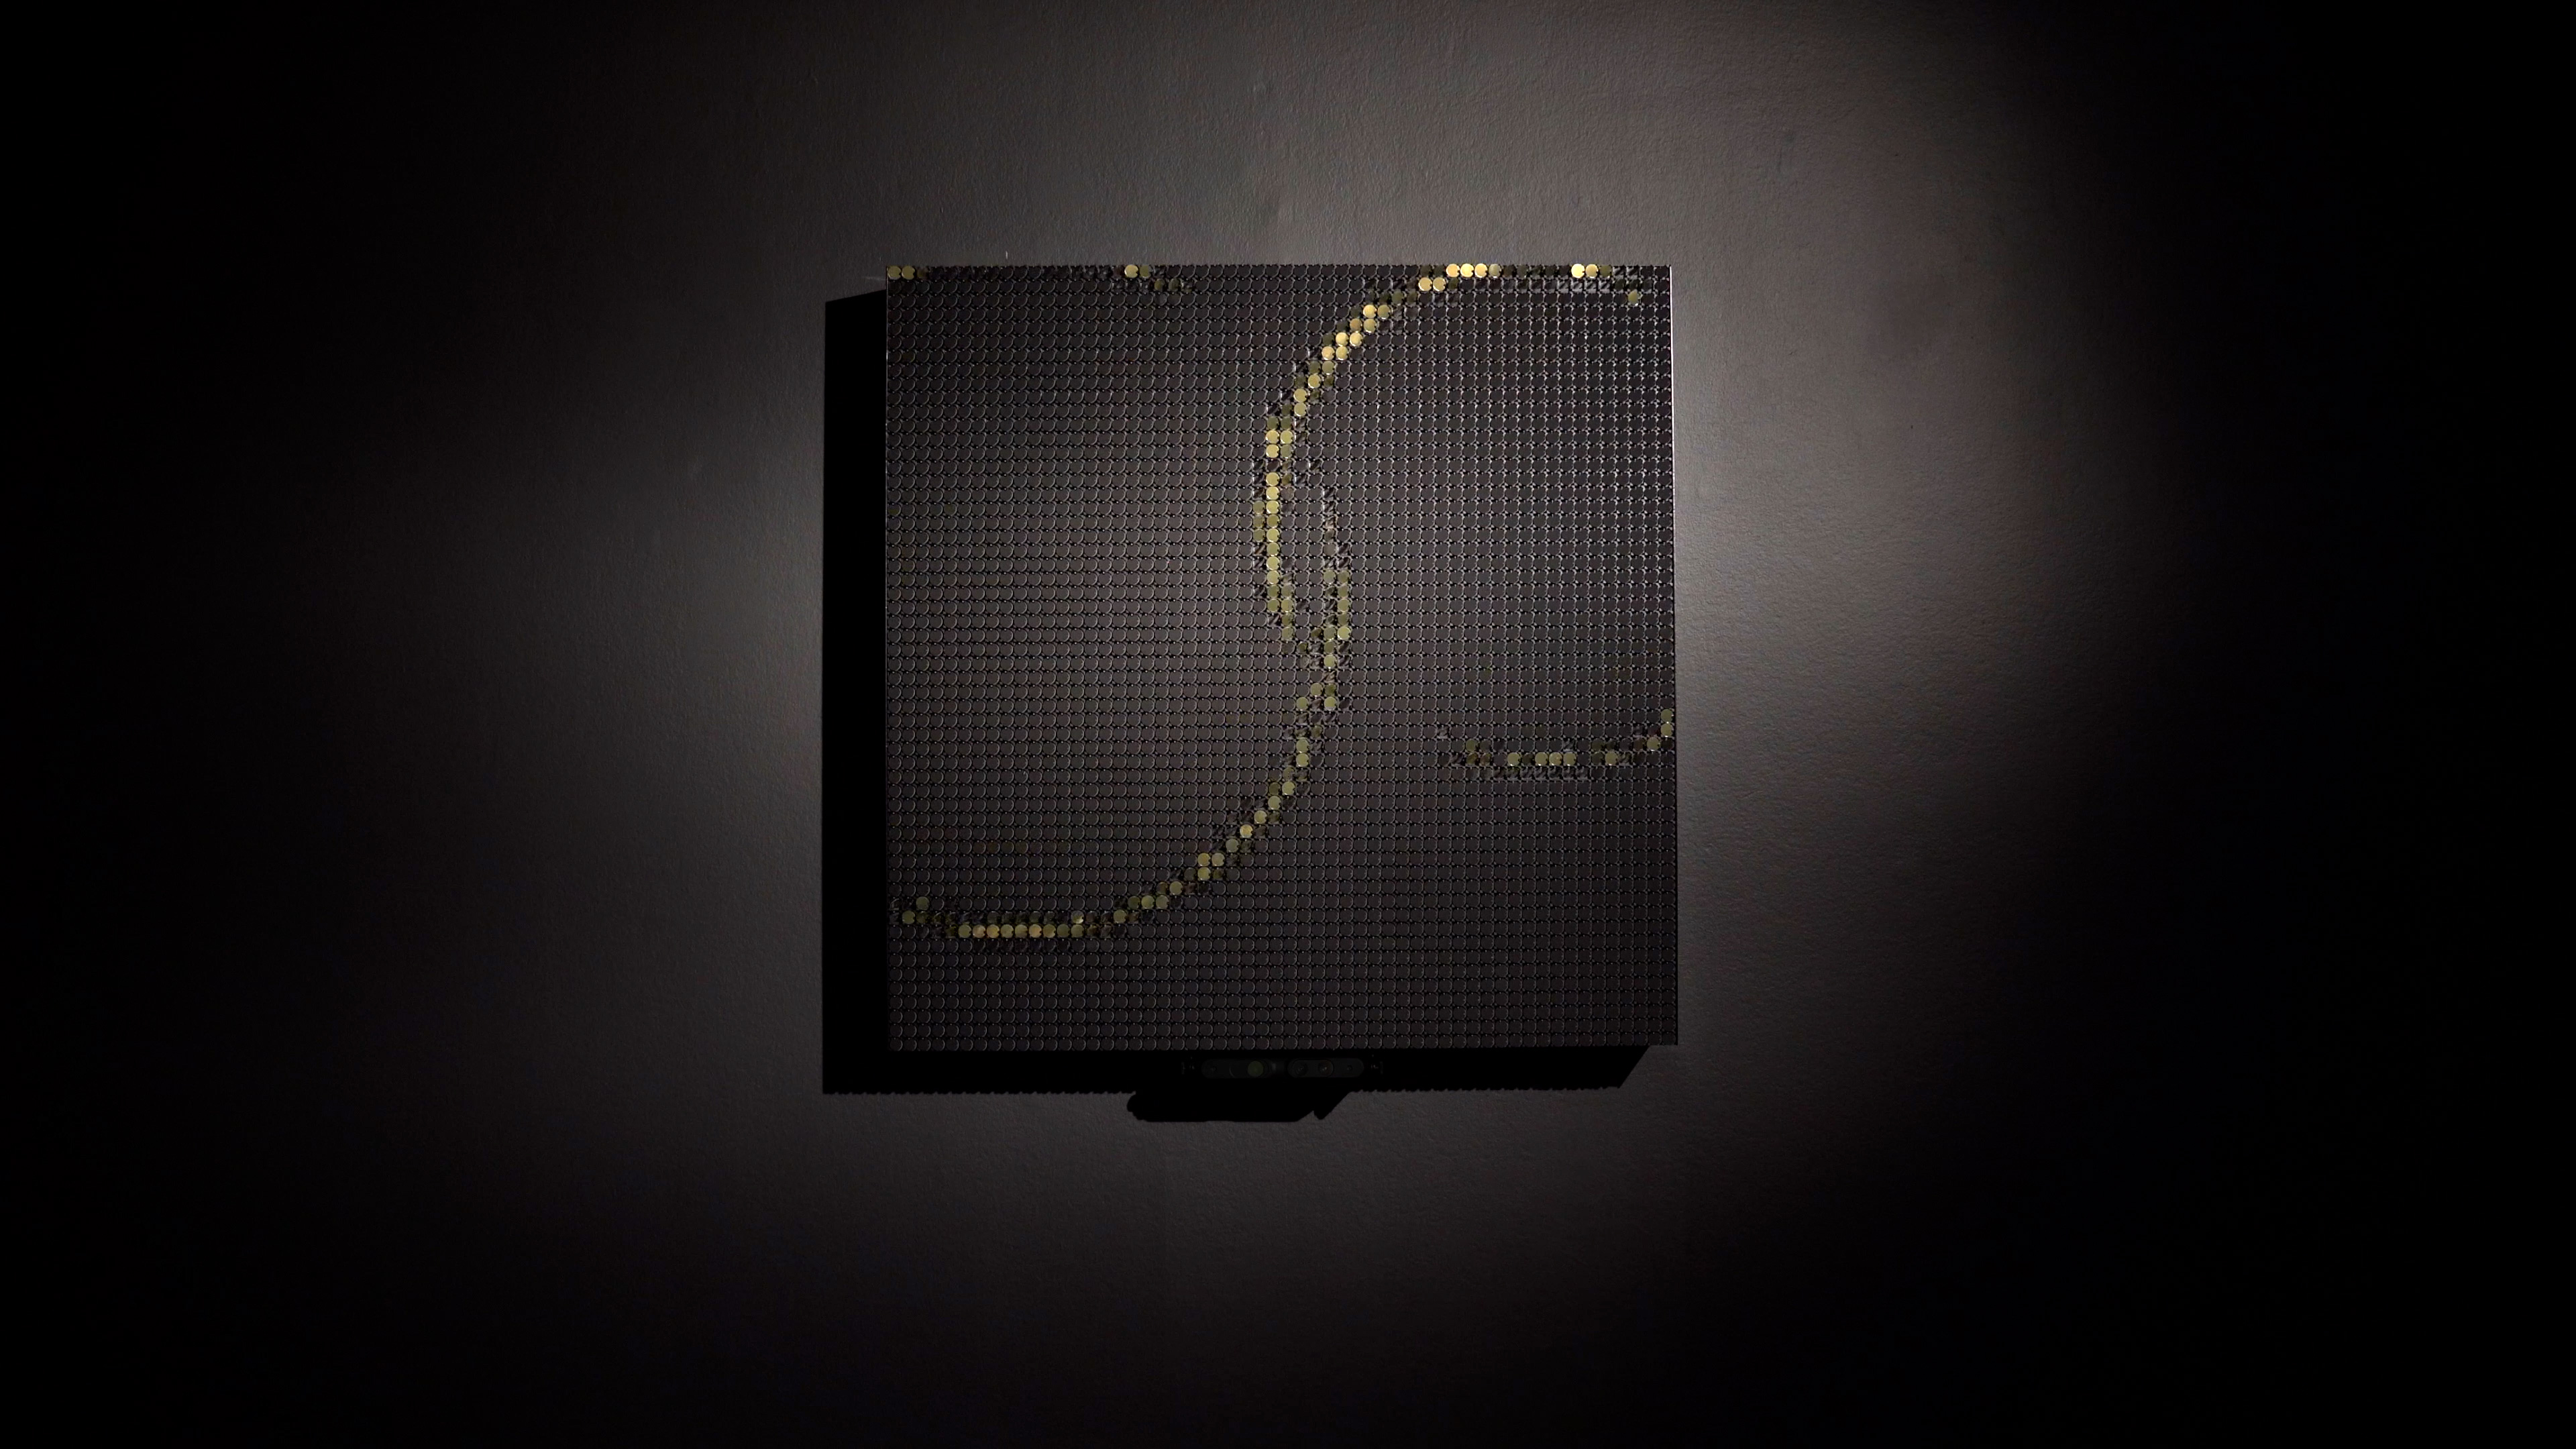 Flip-Discs 4 in Gold ripple visualization